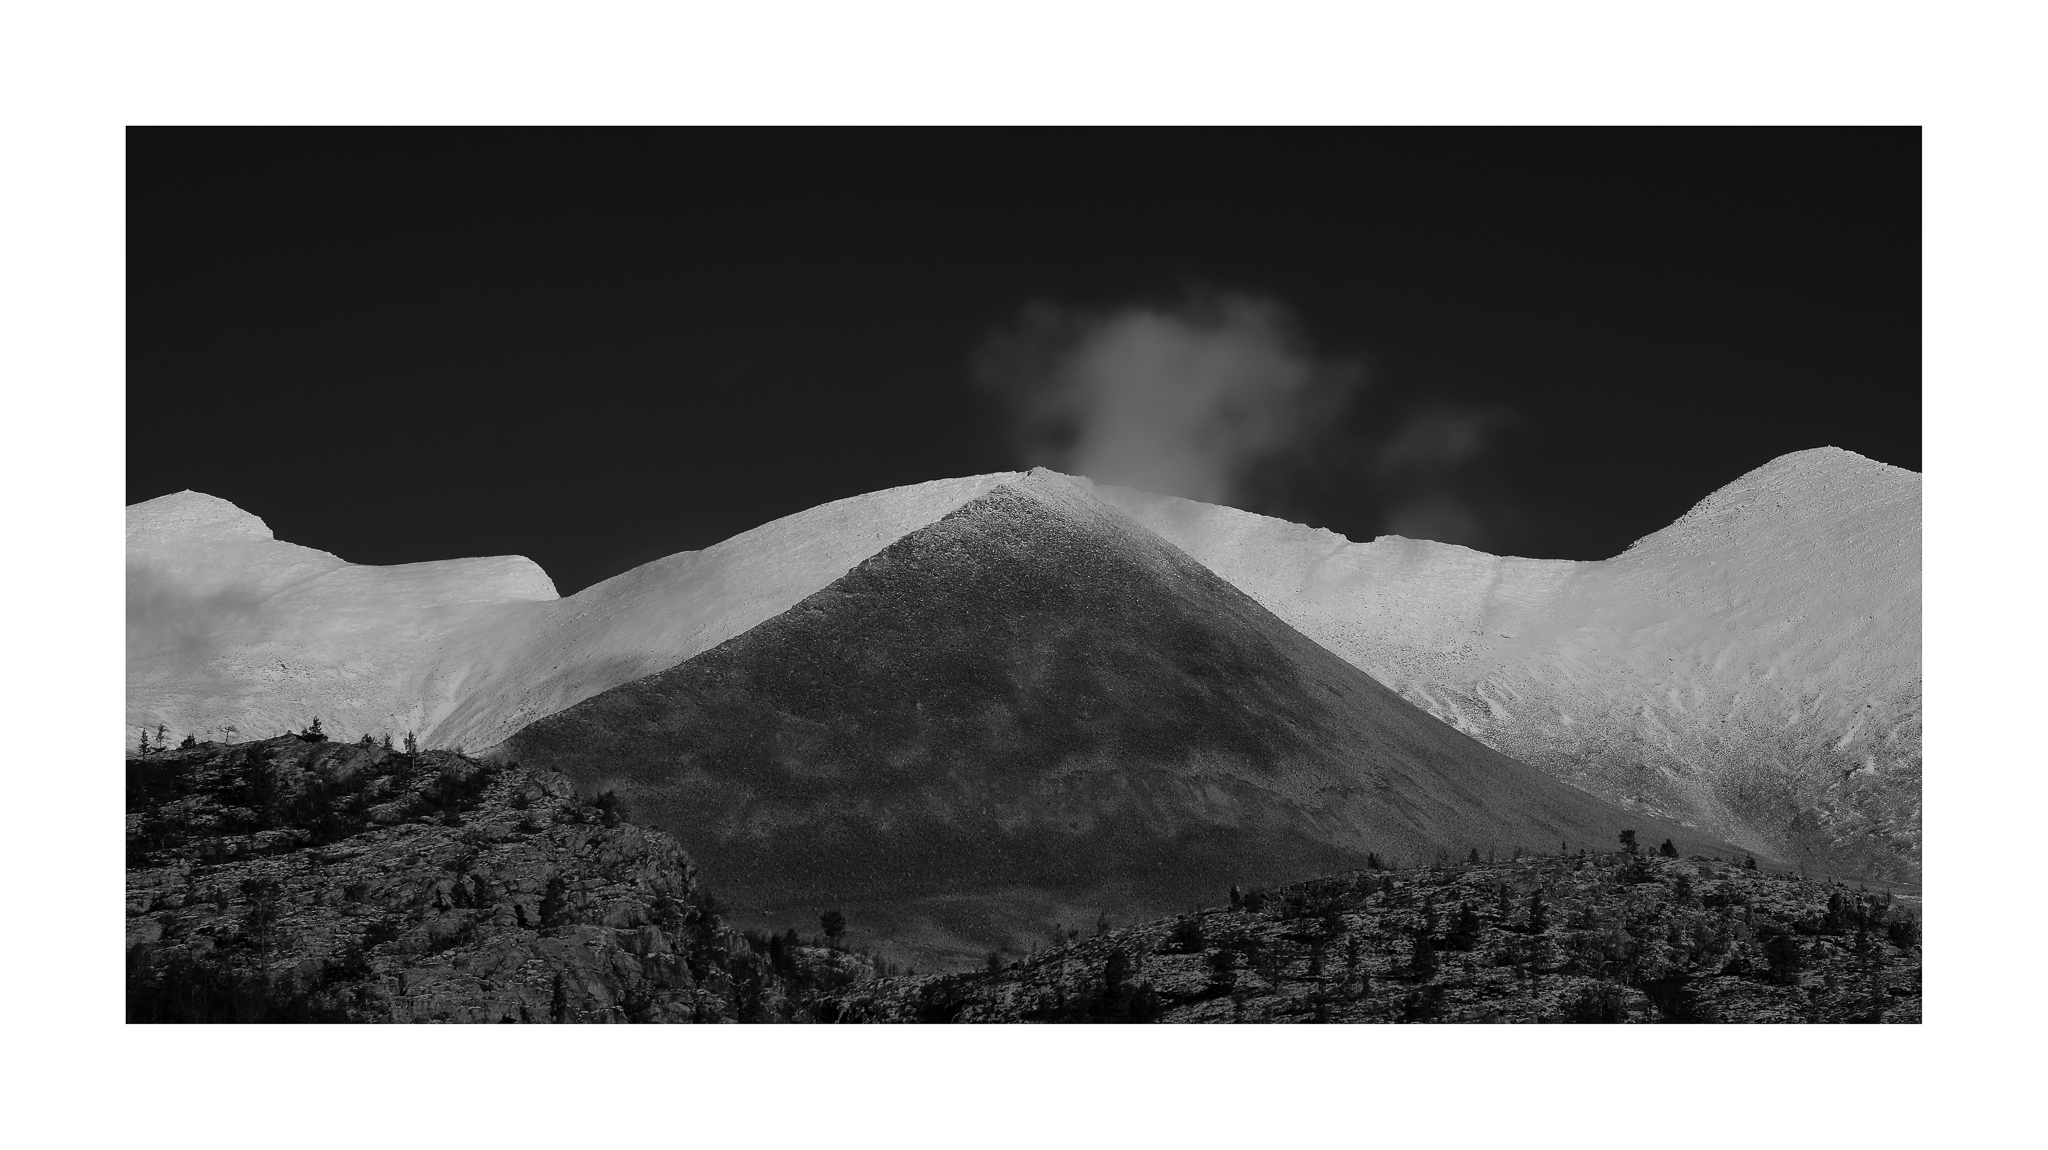 Pyramid of Rondane - Rondane, Norway, 2017